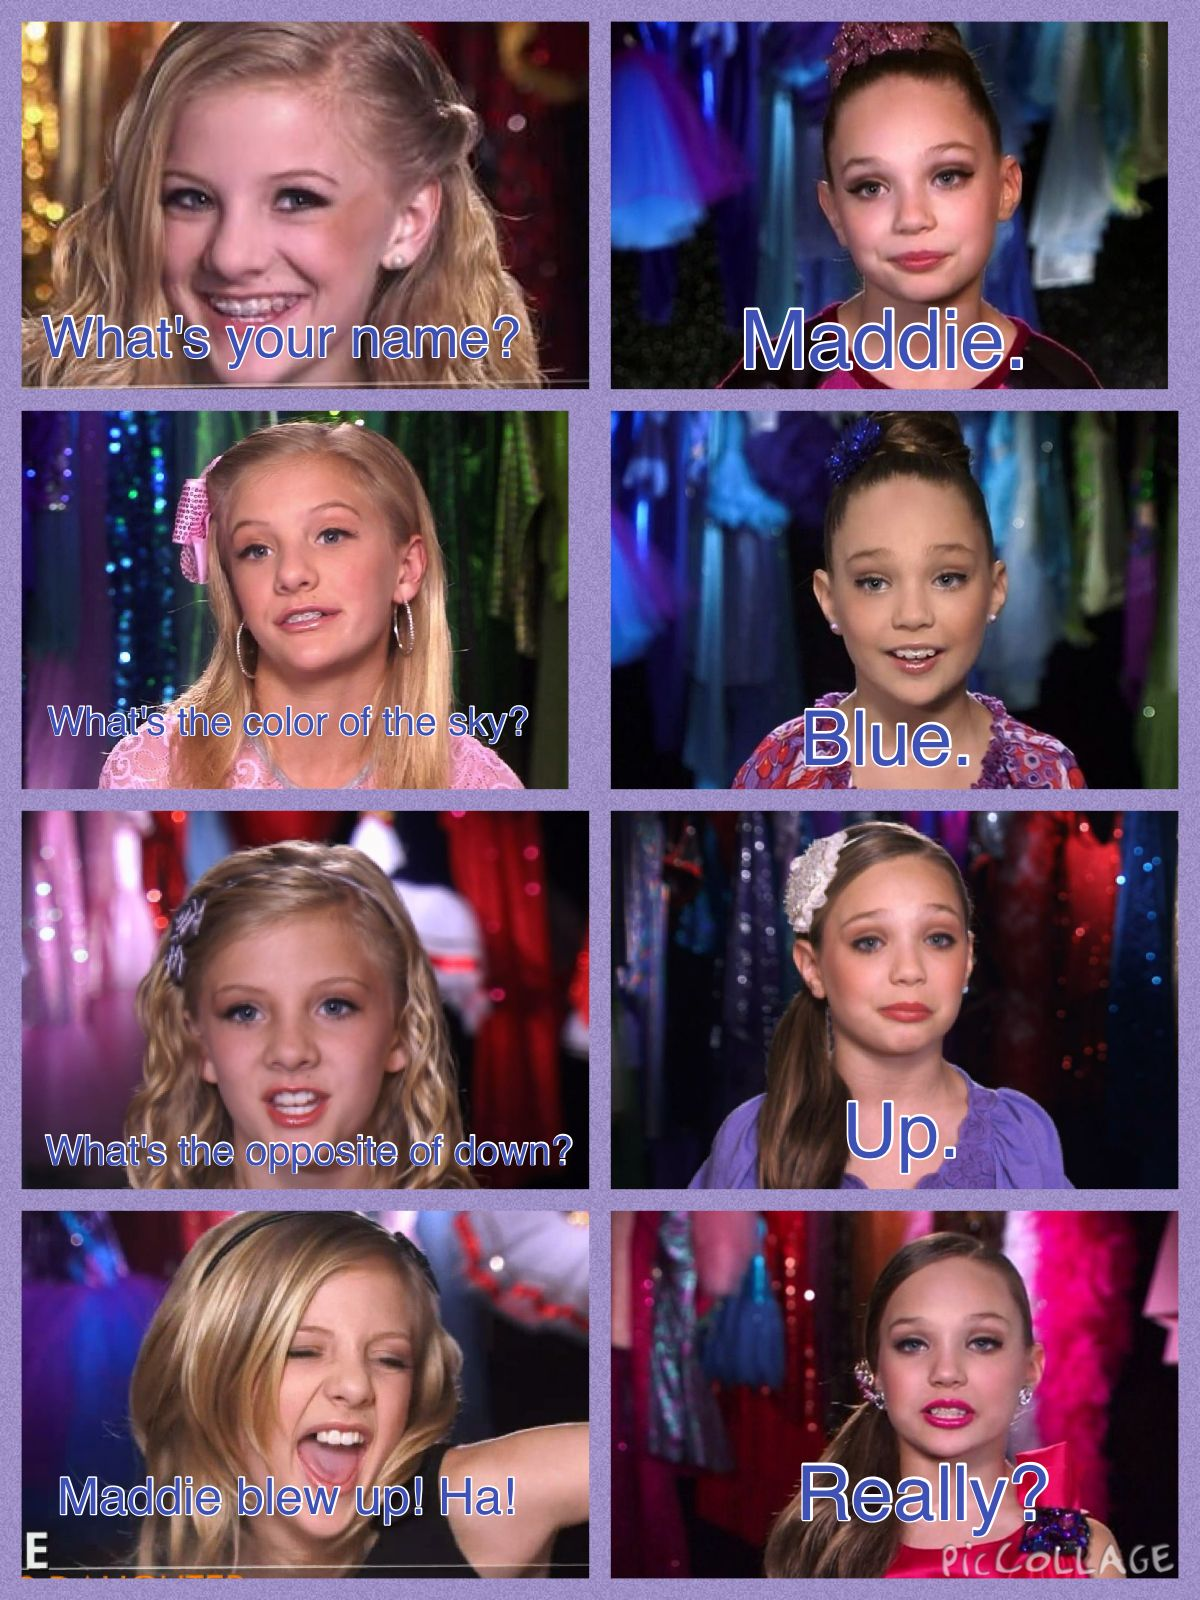 Just A Little Comic Of Maddie And Paige For U Guys To Enjoy Credit To Rileydougherty0 Dance Moms Funny Dance Moms Comics Dance Moms Memes